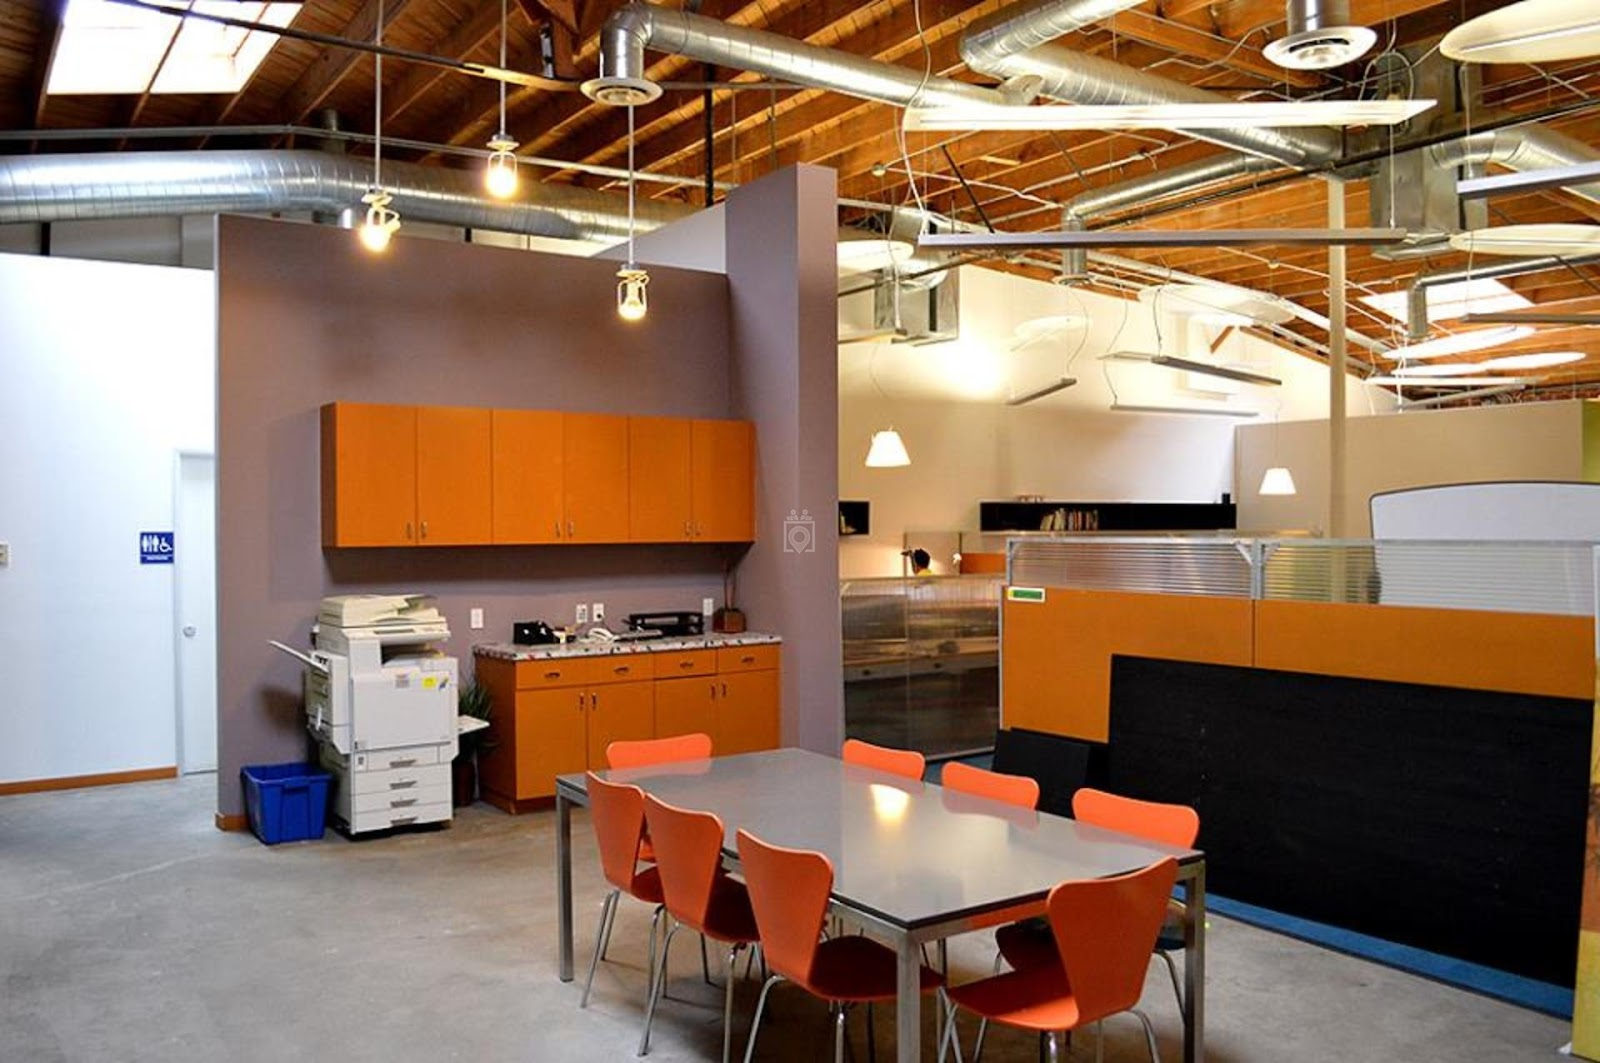 Coworking Space Costa Mesa: 10 Best Spaces with Pricing, Amenities & Location [2021] 25